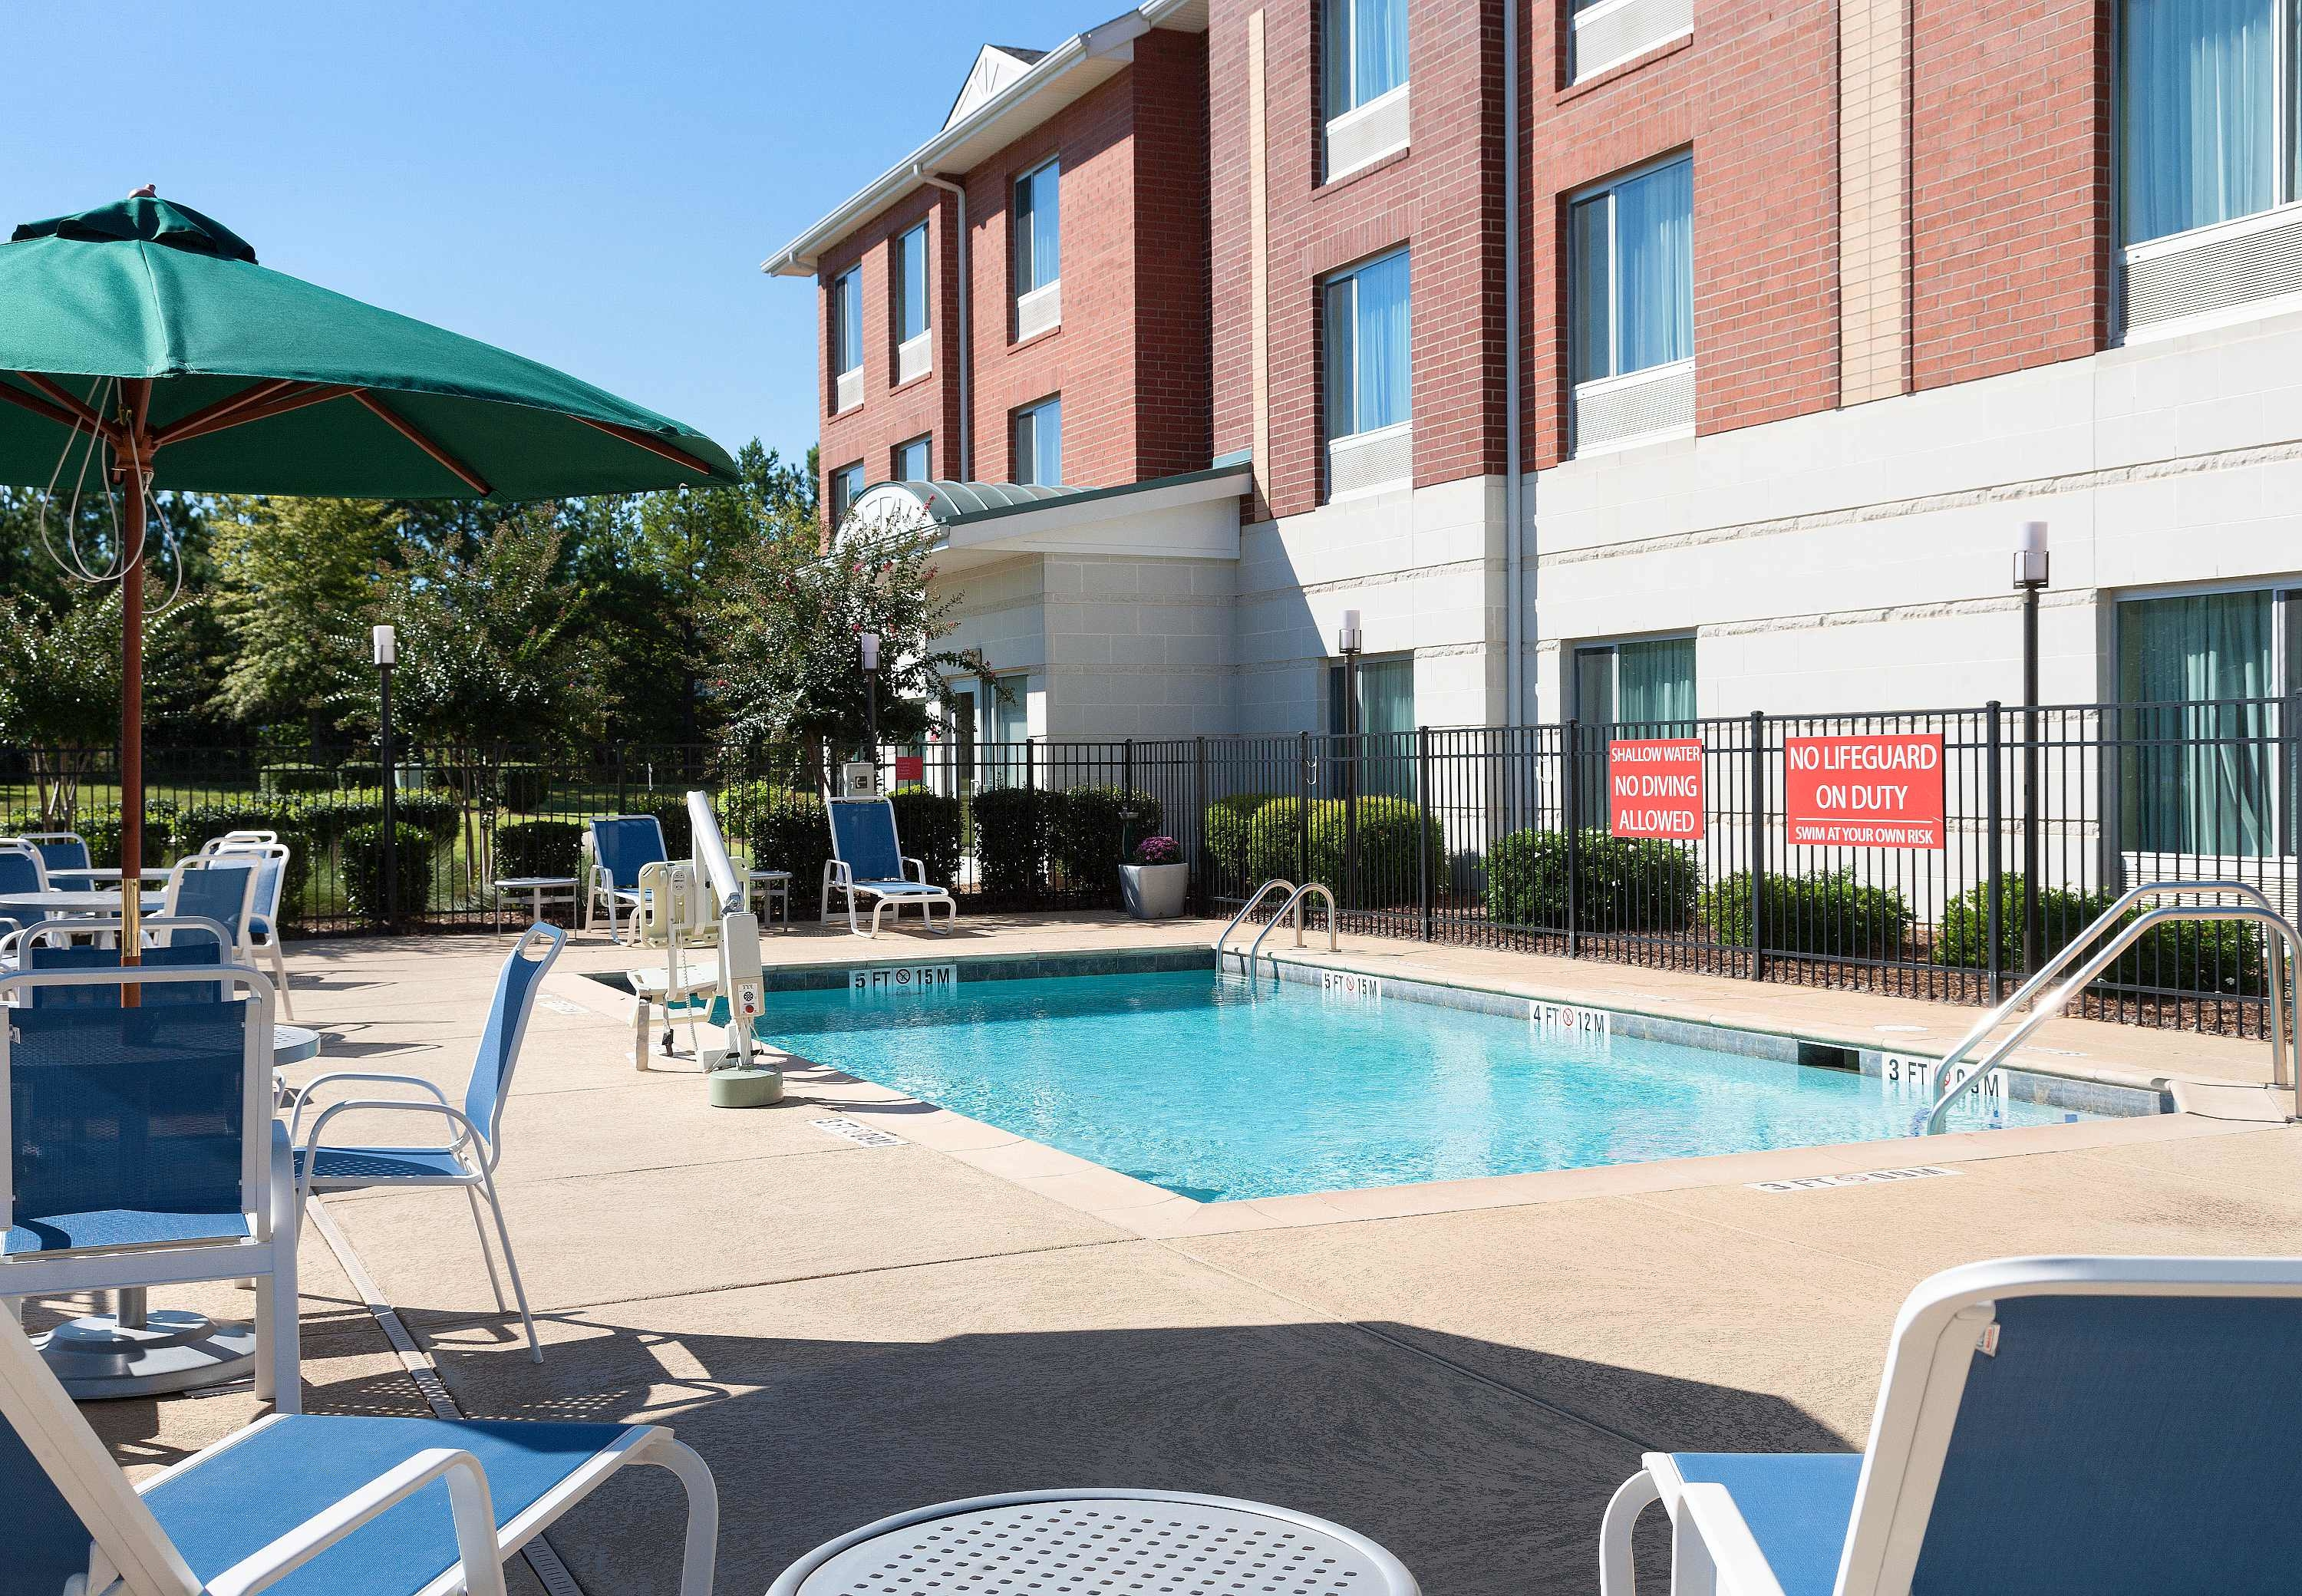 TownePlace Suites by Marriott Rock Hill image 2